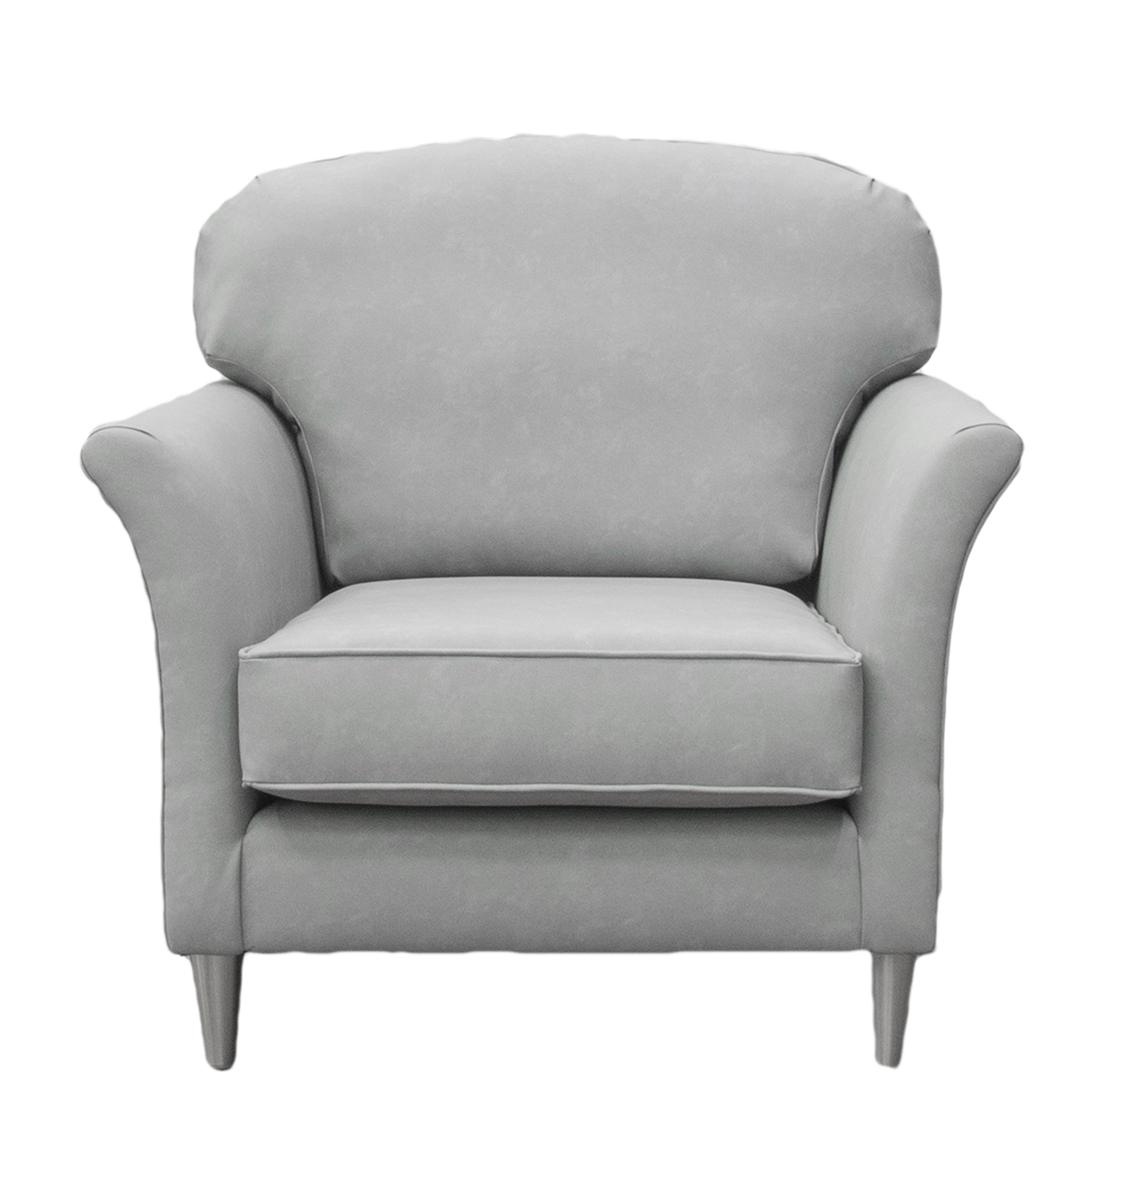 Elisha Small Chair in Infiniti Shadow Leatherette Platinum Collection